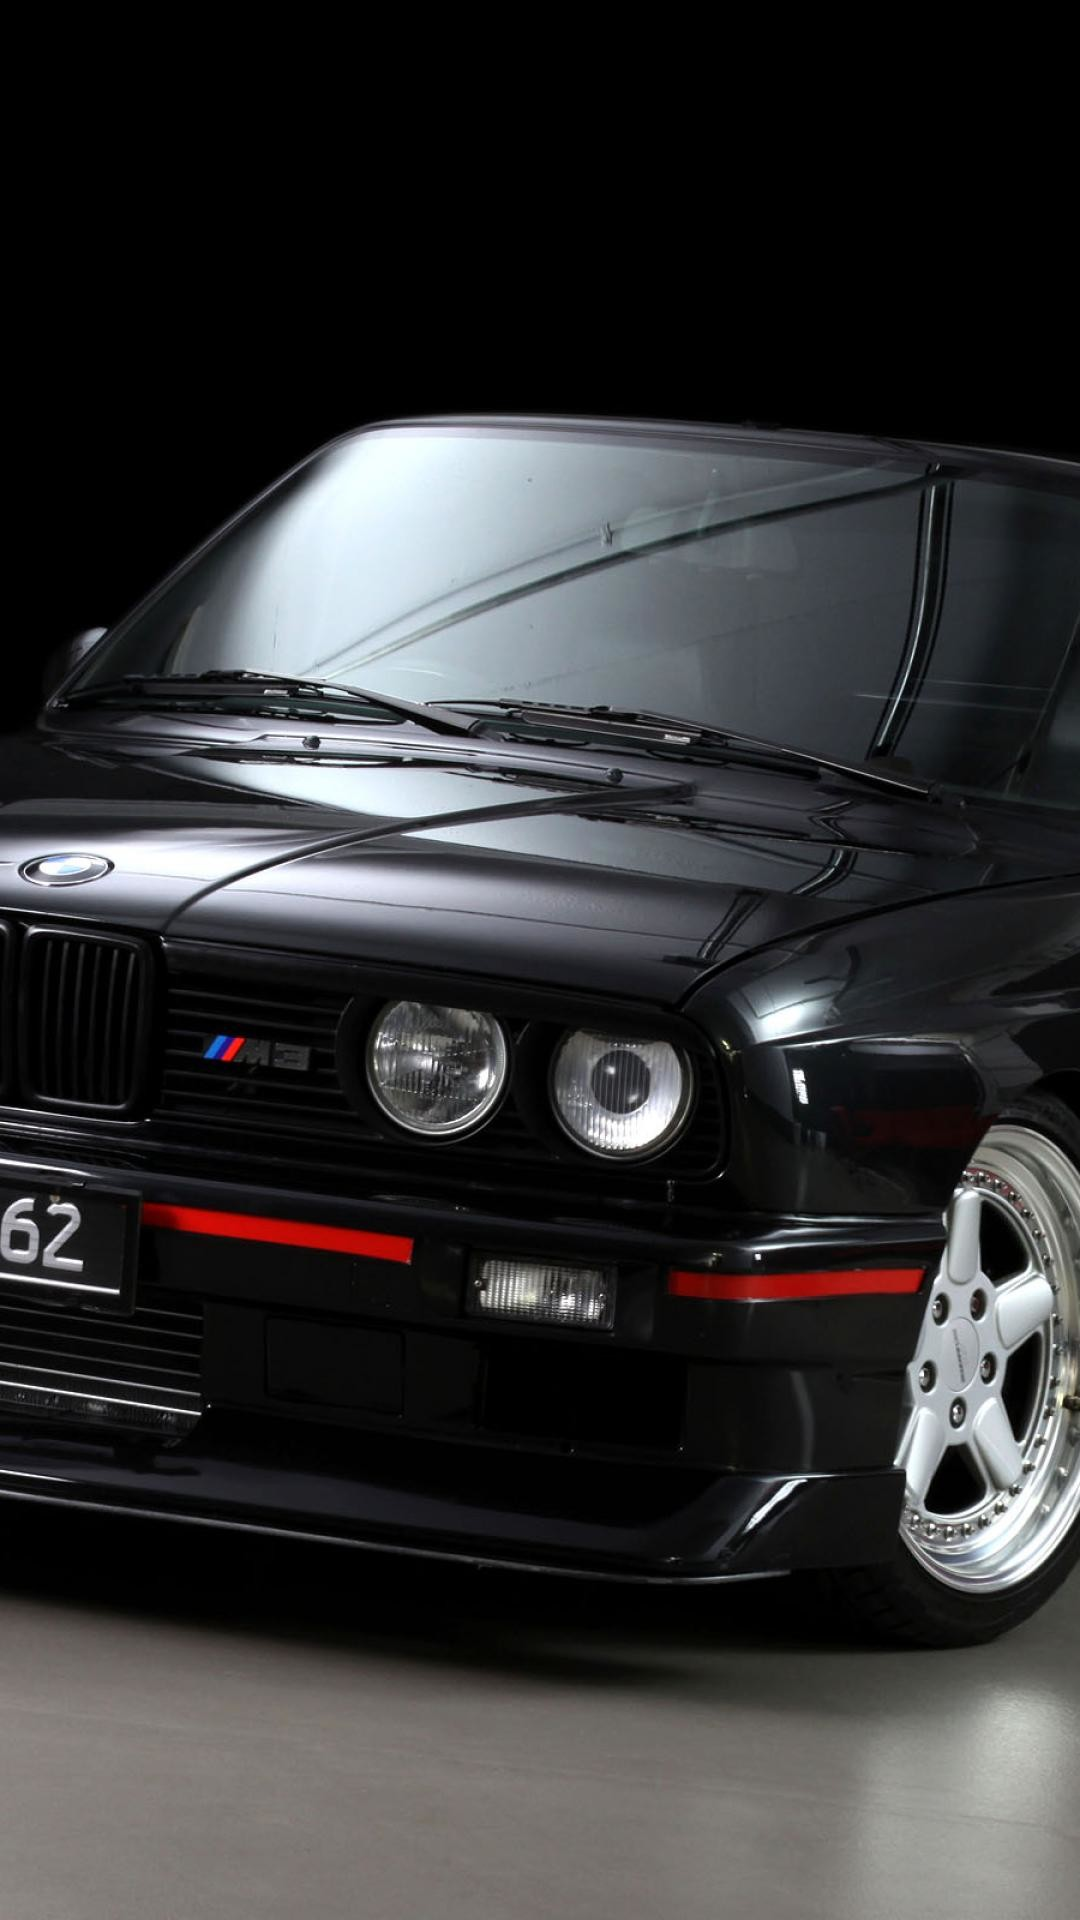 Bmw E30 M3 Wallpaper 65 Images